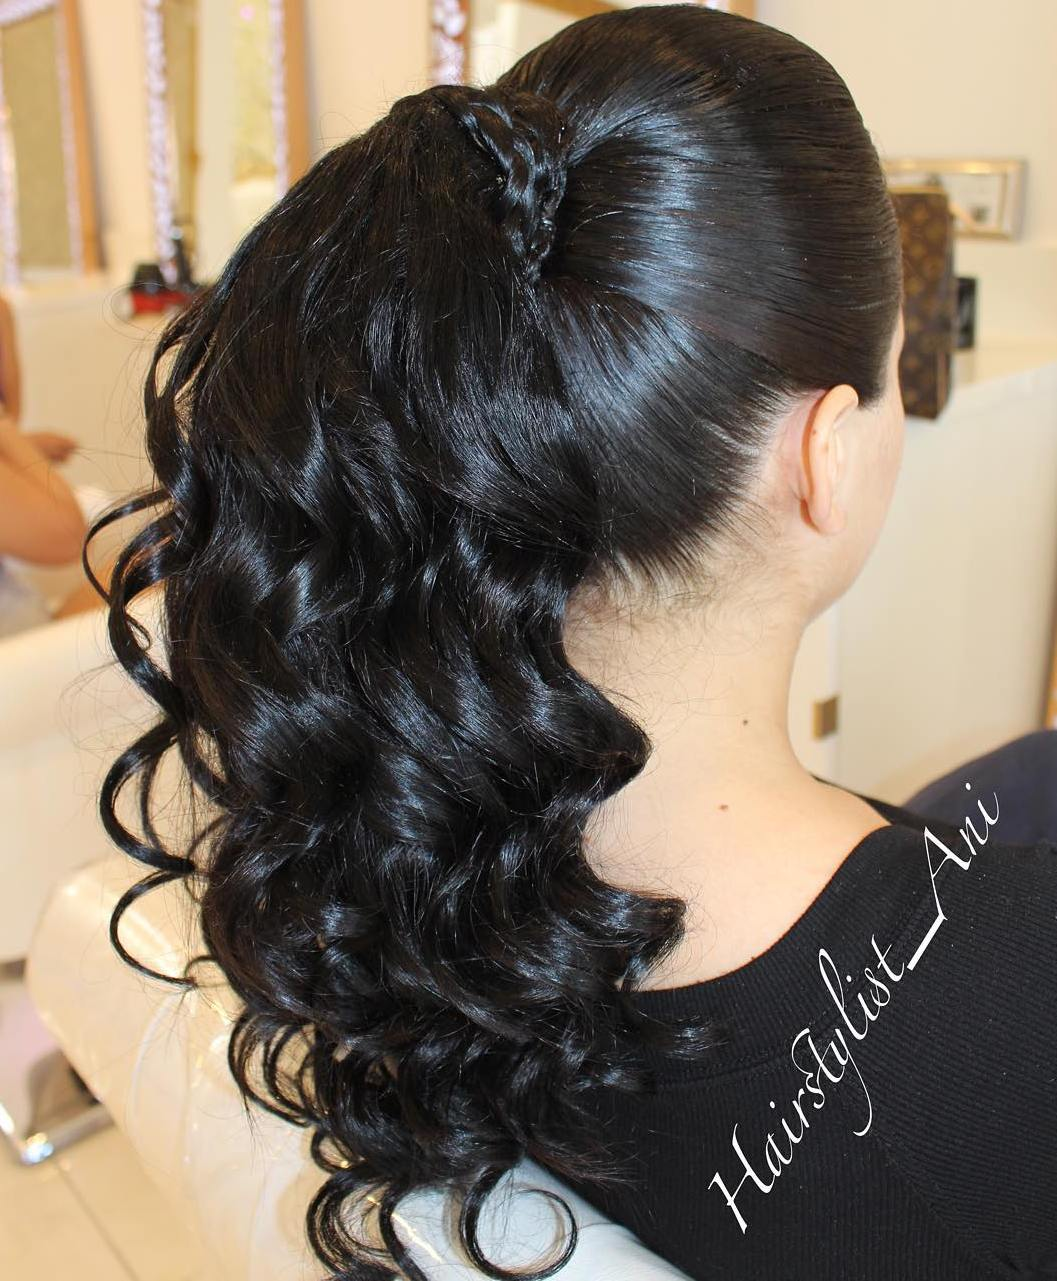 Ponytail With A Braided Hair Wrap